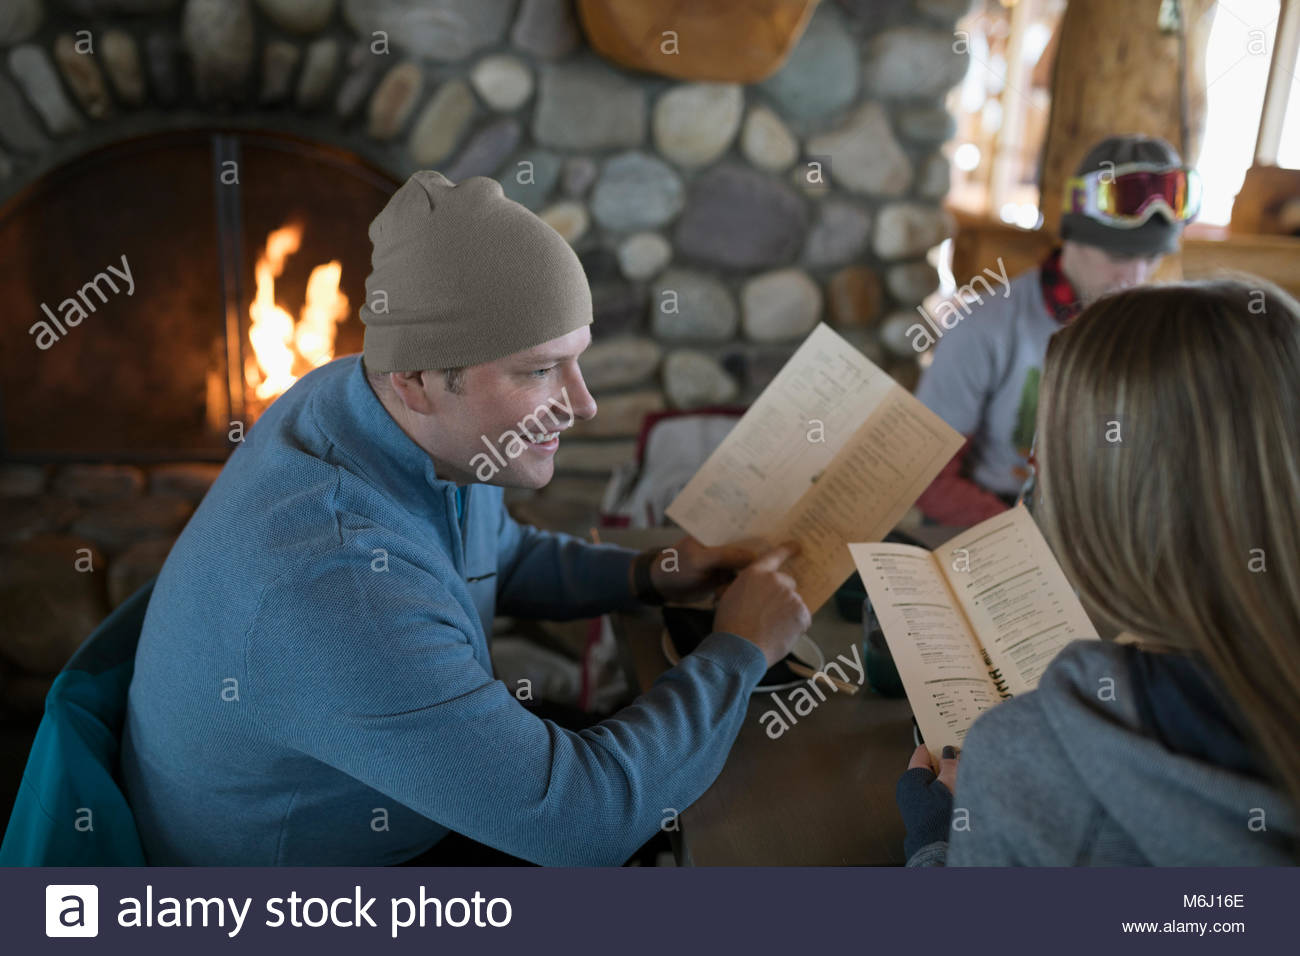 Father and daughter skiers looking at ski resort lodge restaurant menu fireside apres-ski - Stock Image